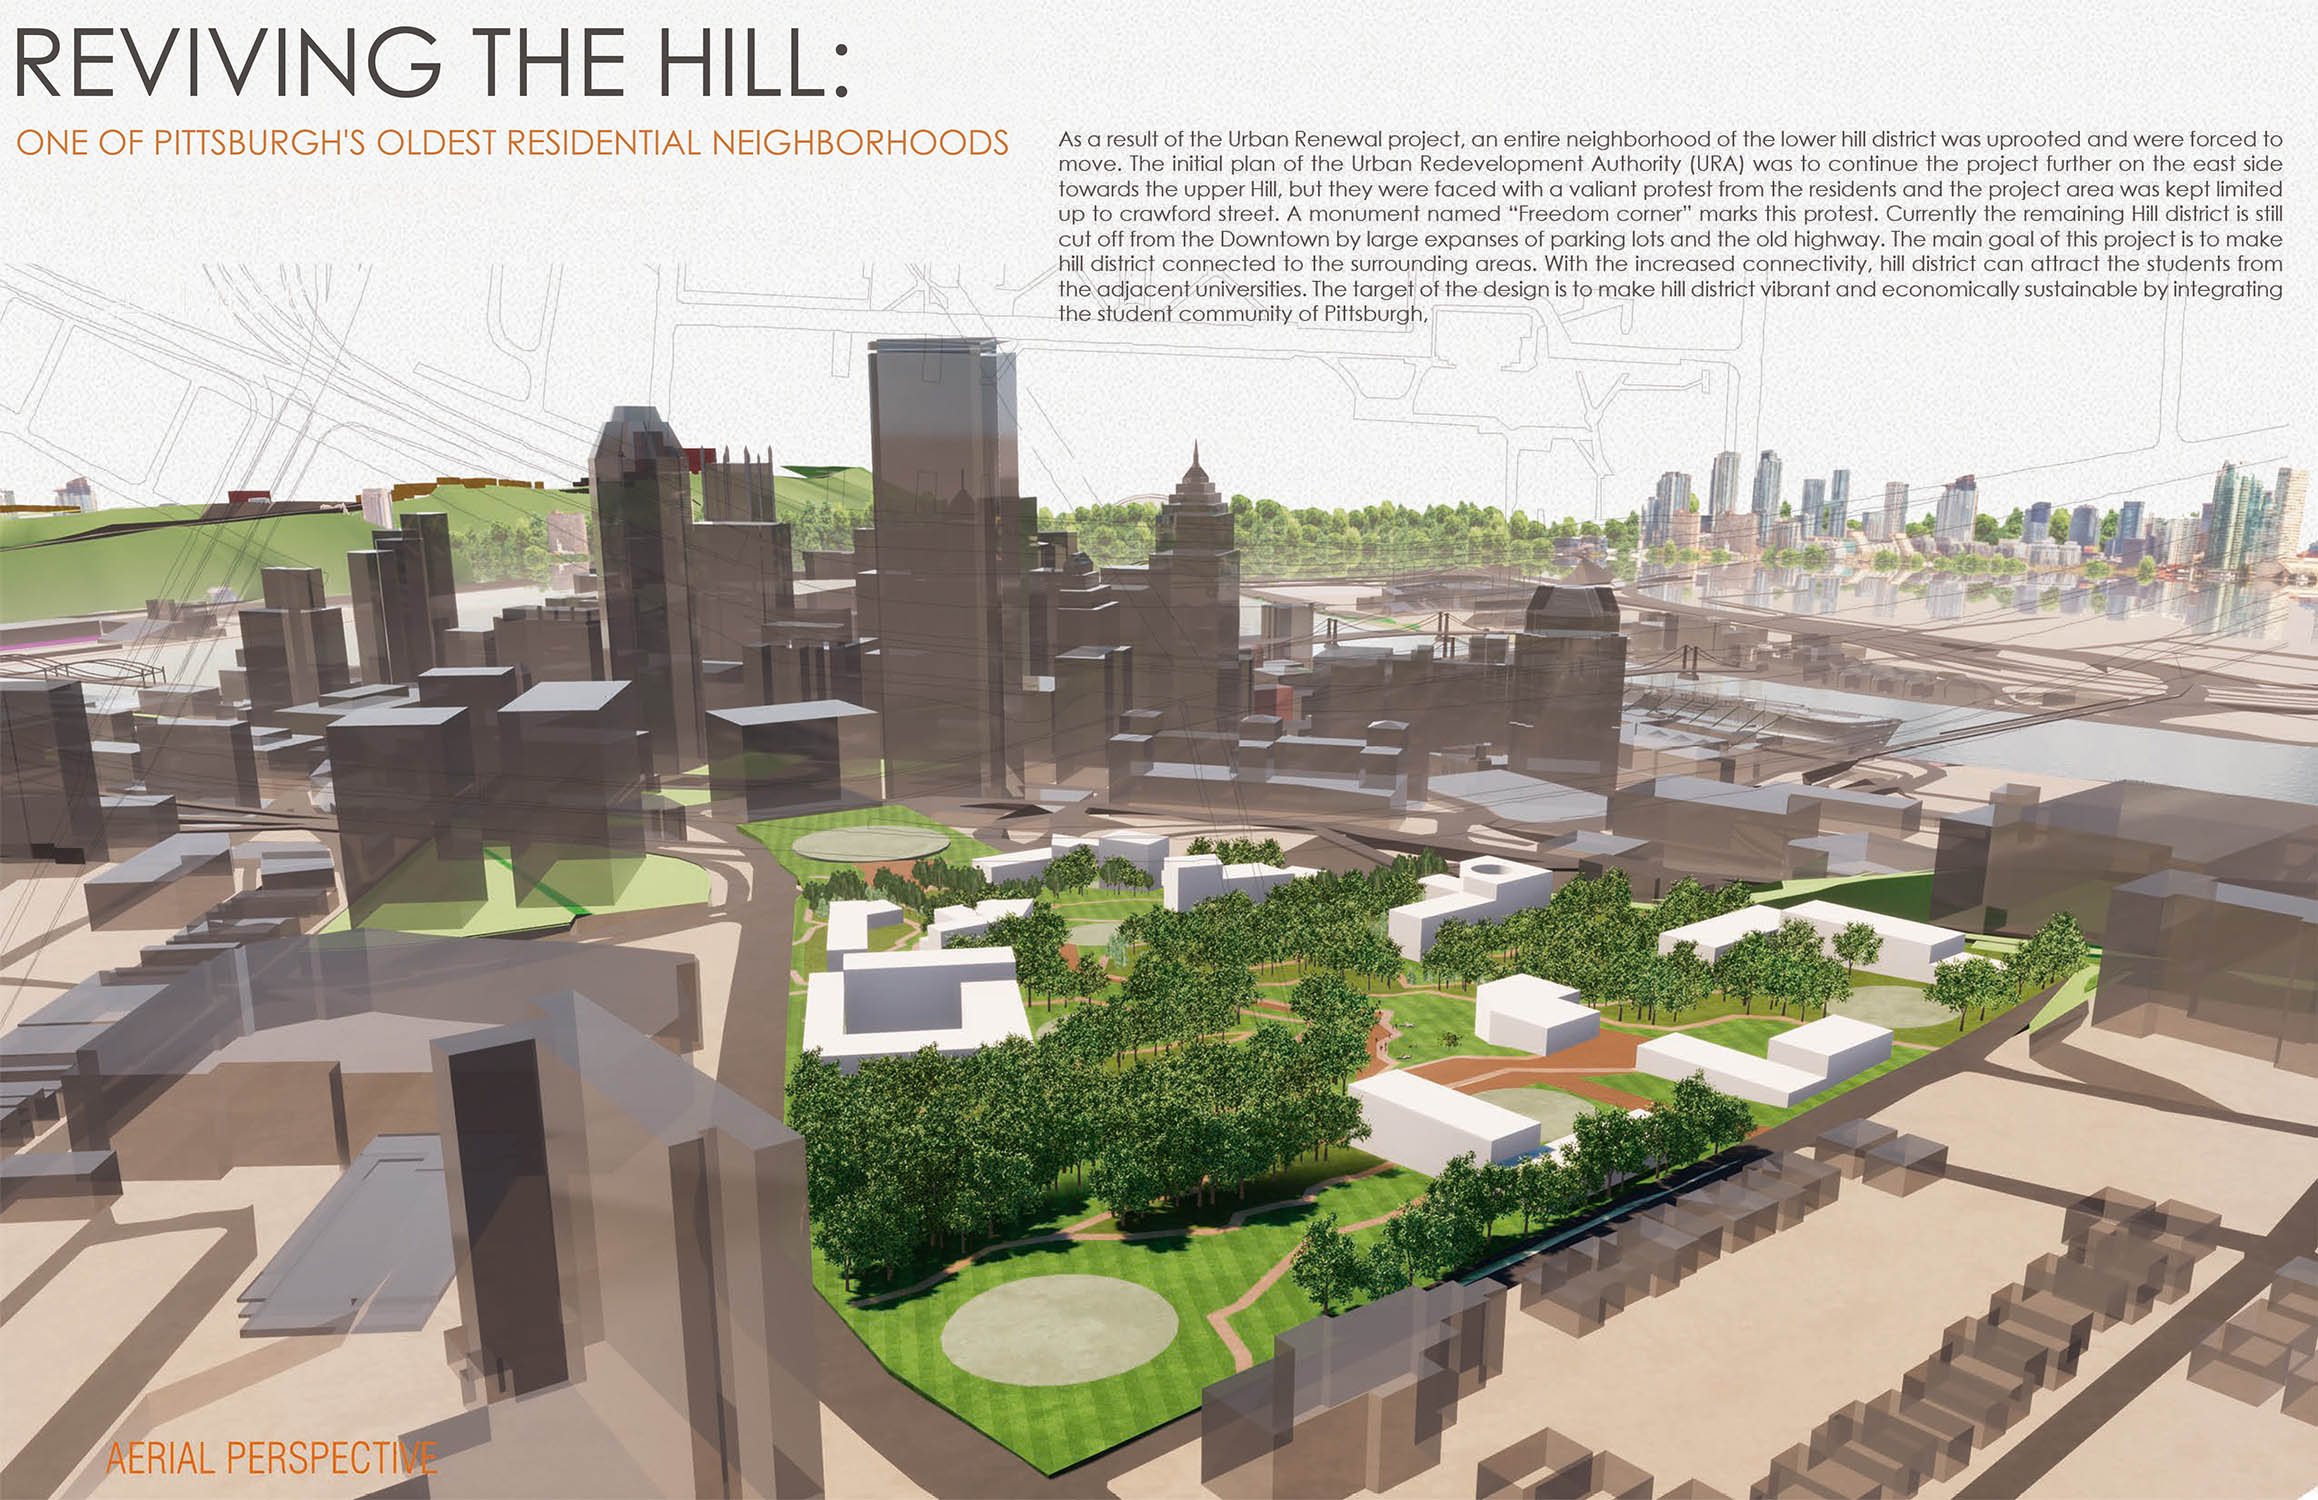 Reviving The Hill: One of Pittsburgh's oldest residential neighborhoods